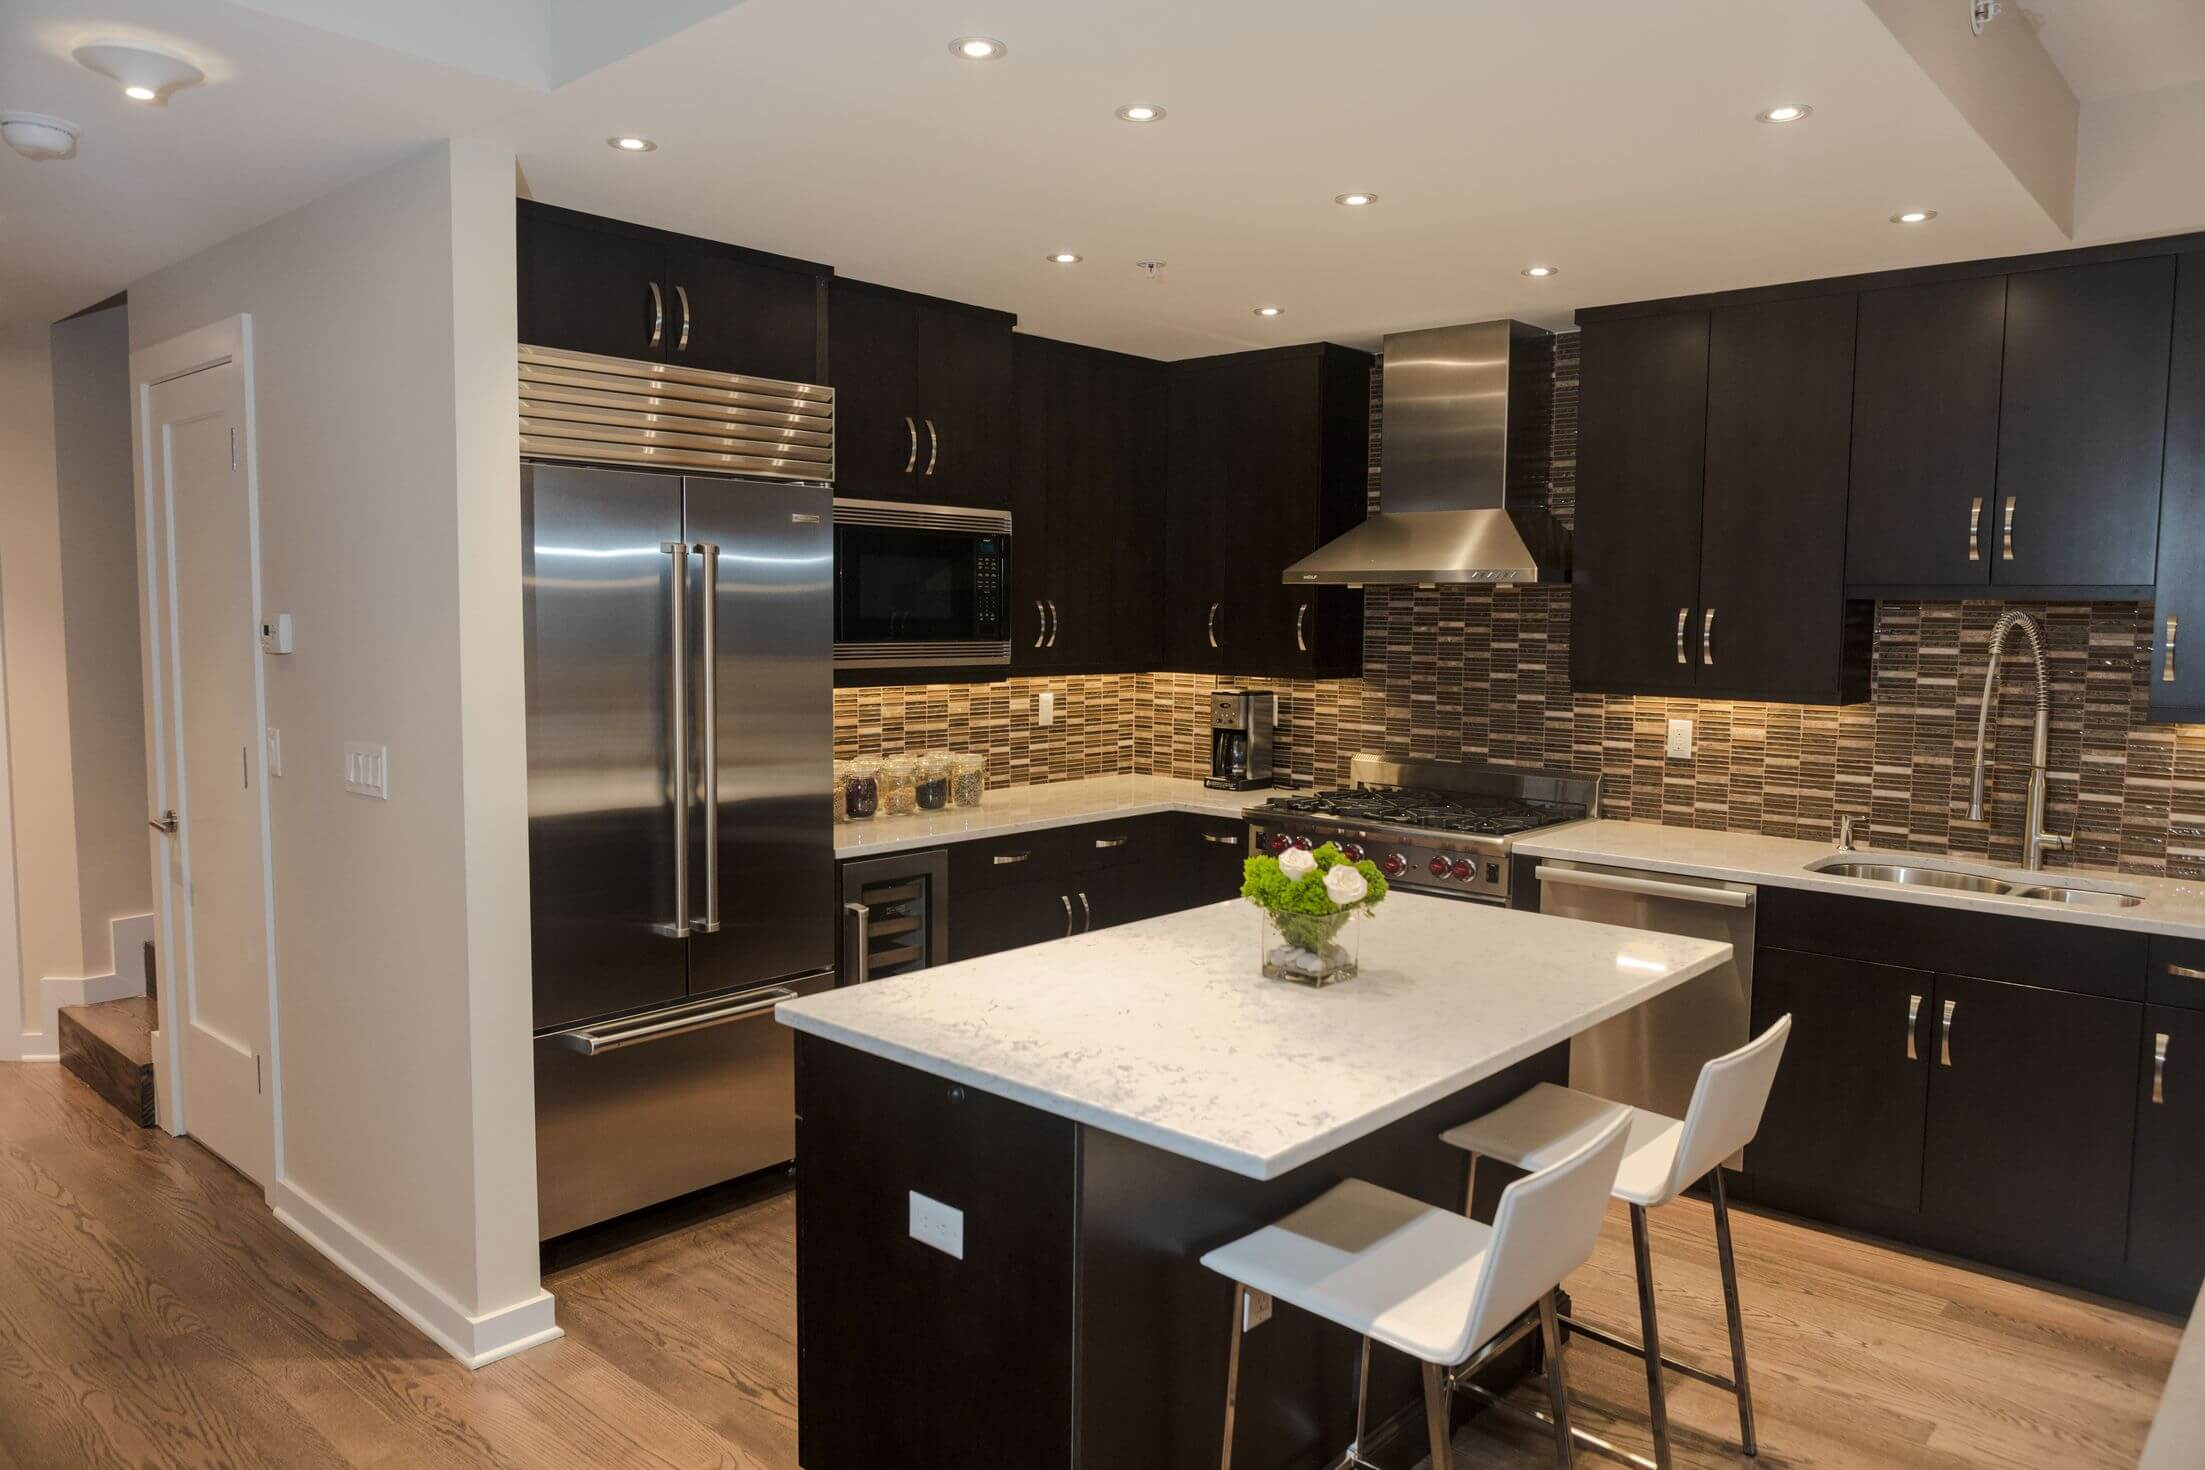 40 magnificent kitchen designs with dark cabinets kitchen counters and backsplash Black wood cabinetry and island contrast with patterned tile backsplash white marble countertops and